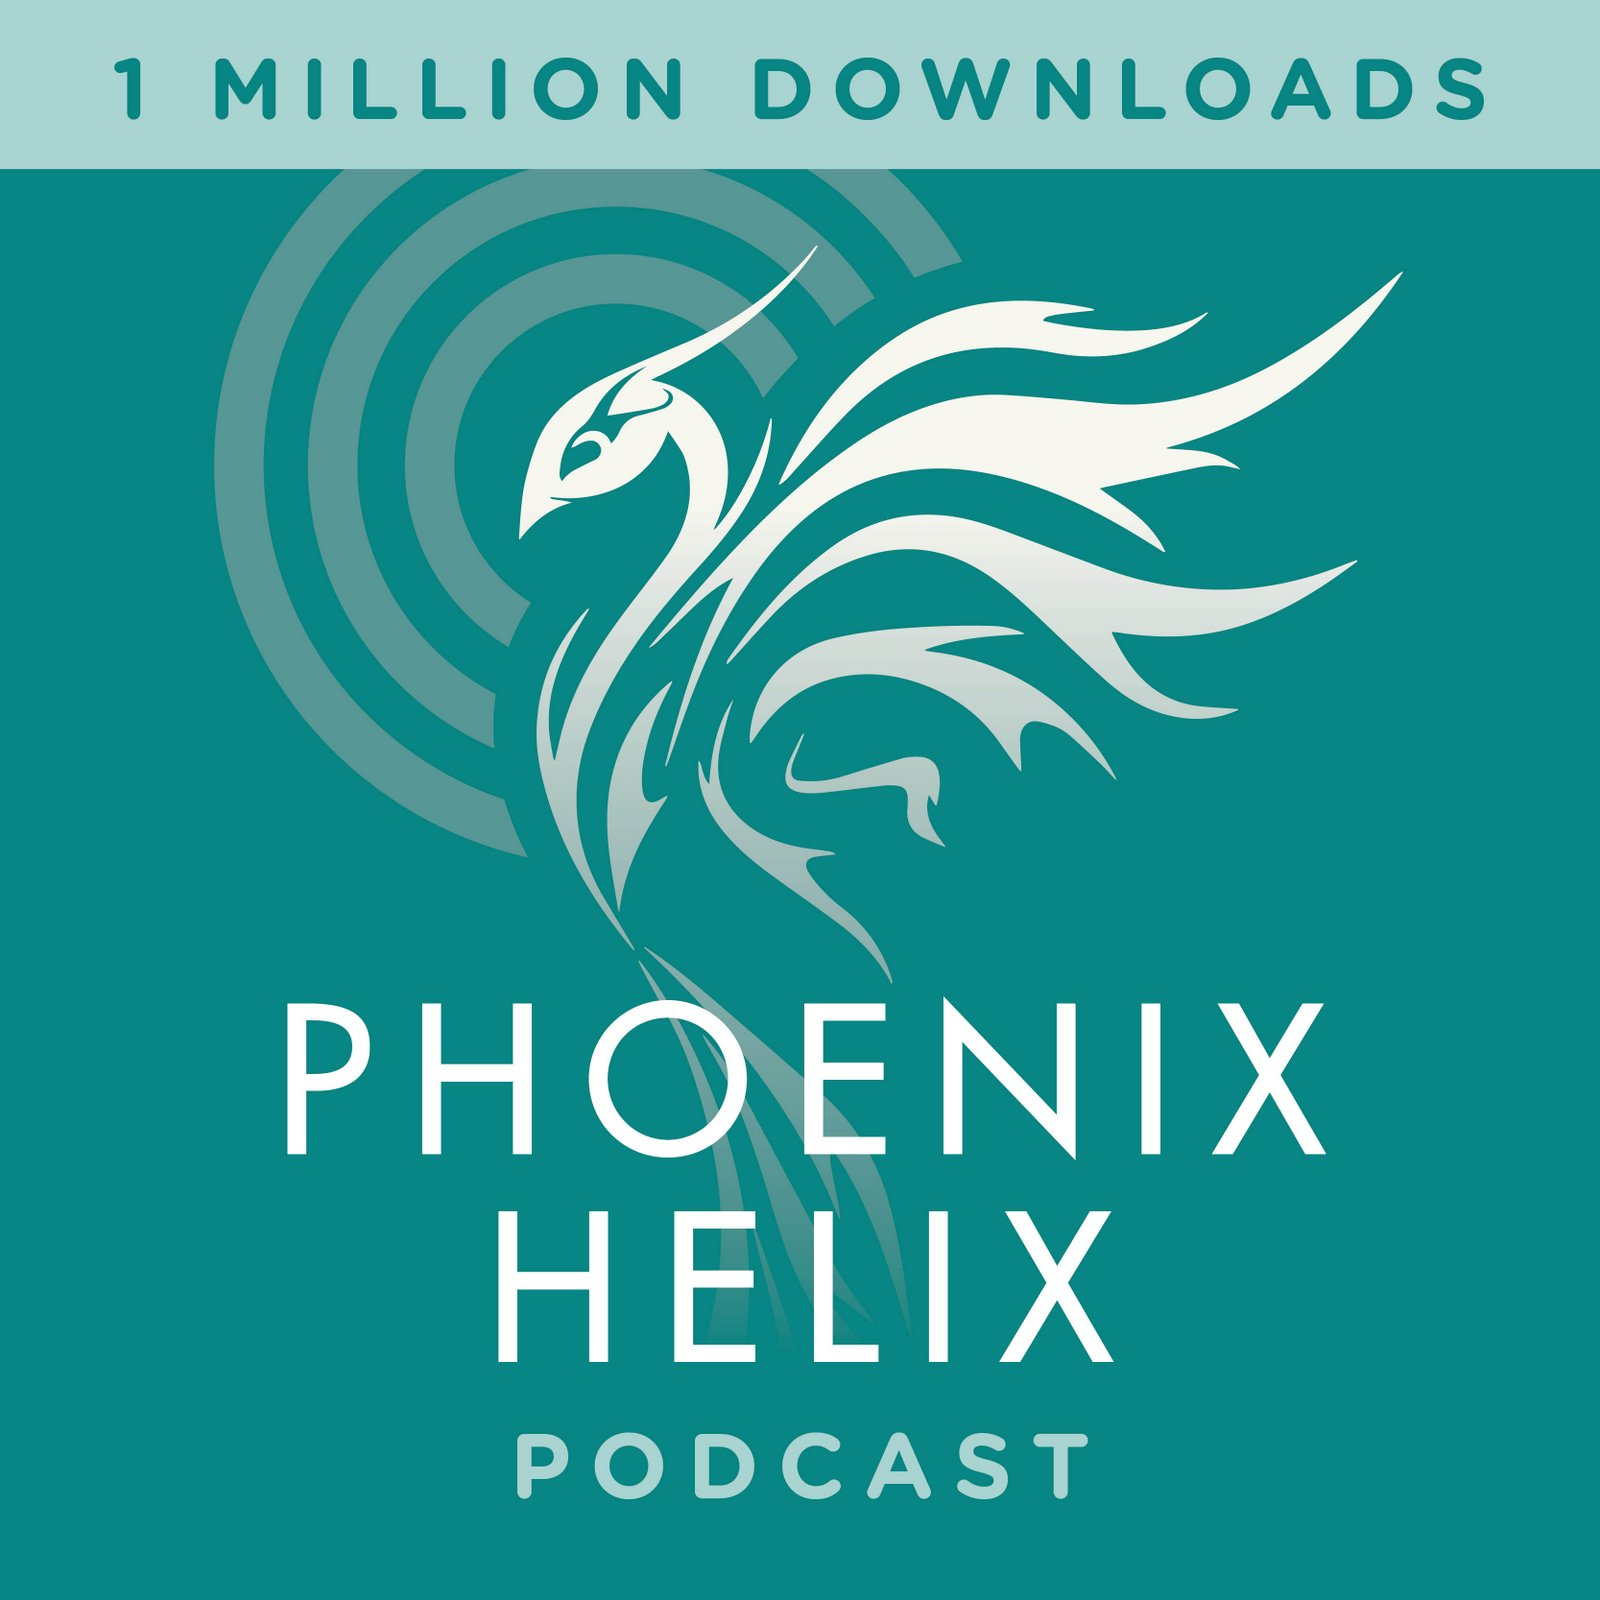 Phoenix Helix Podcast Episode Archives